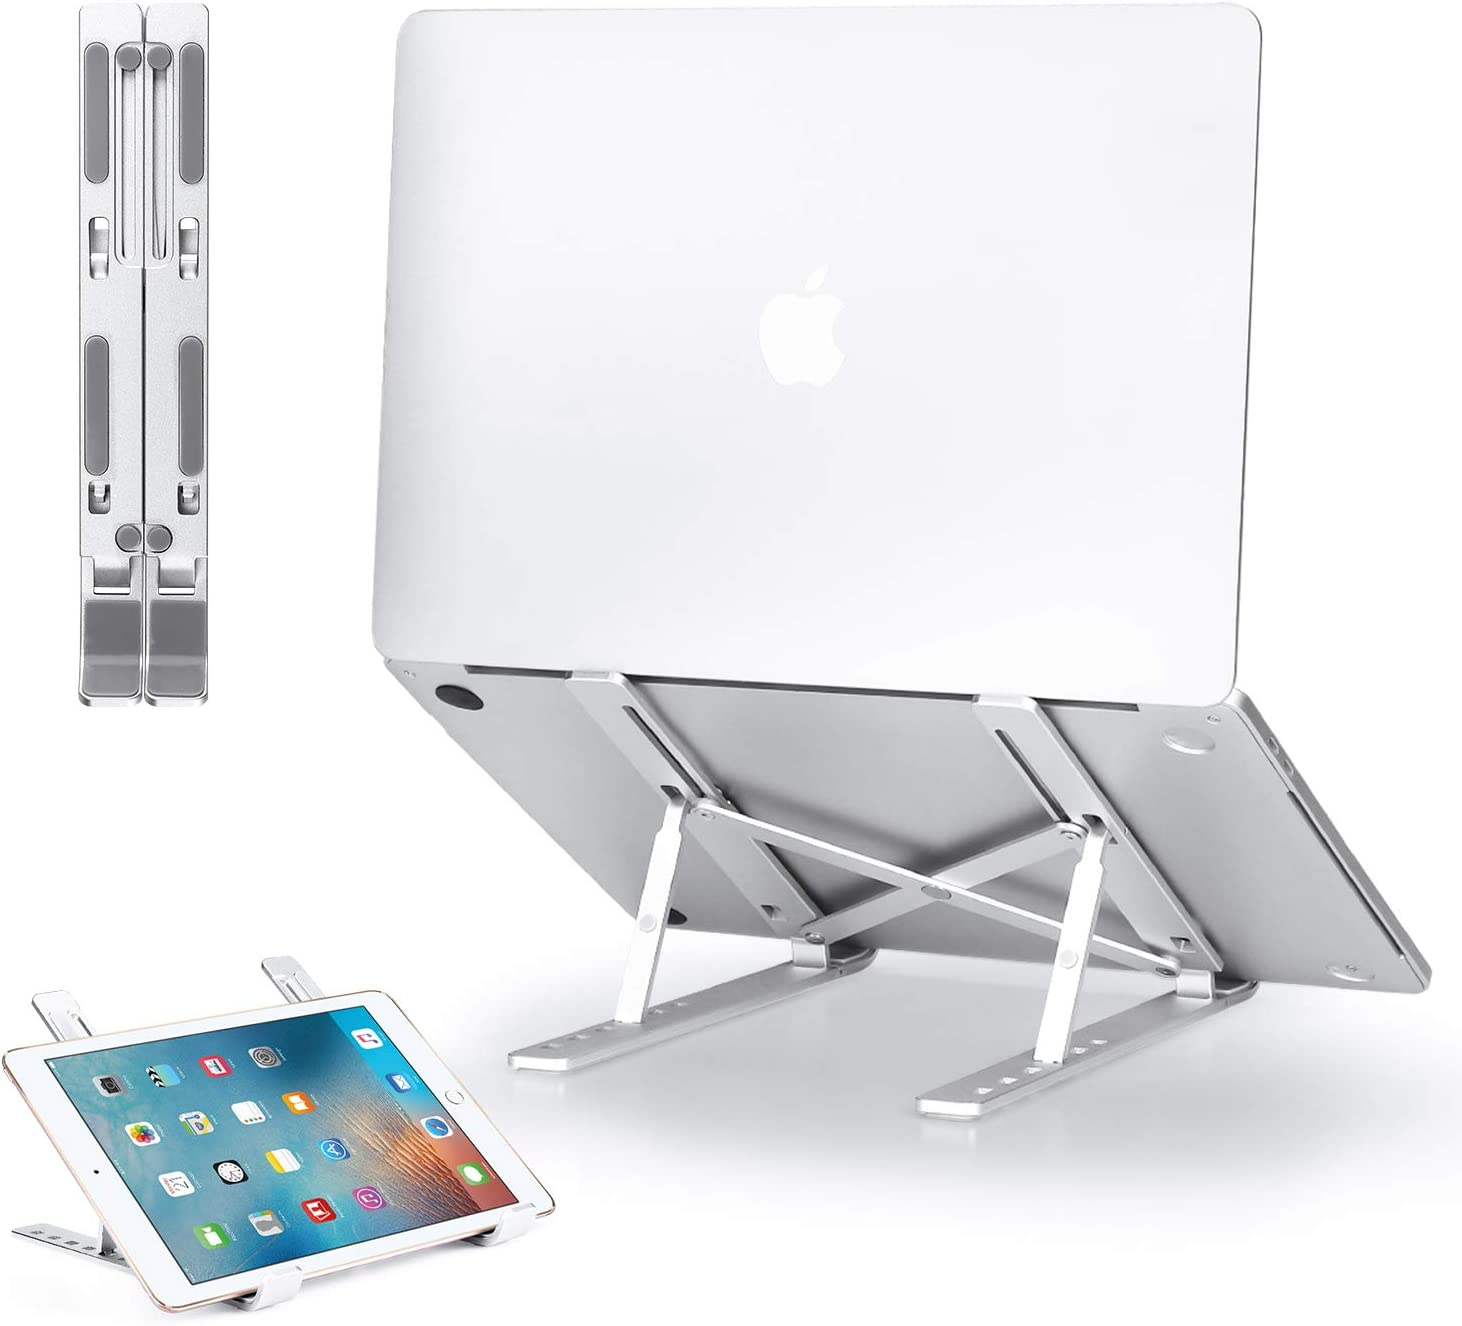 GIM Laptop Stand, Adjustable Aluminum Laptop Holder Riser Computer Tablet Stand, Foldable Portable Desktop Holder Compatible with 10-15.6 Inch MacBook,iPad, HP, Dell, Lenovo